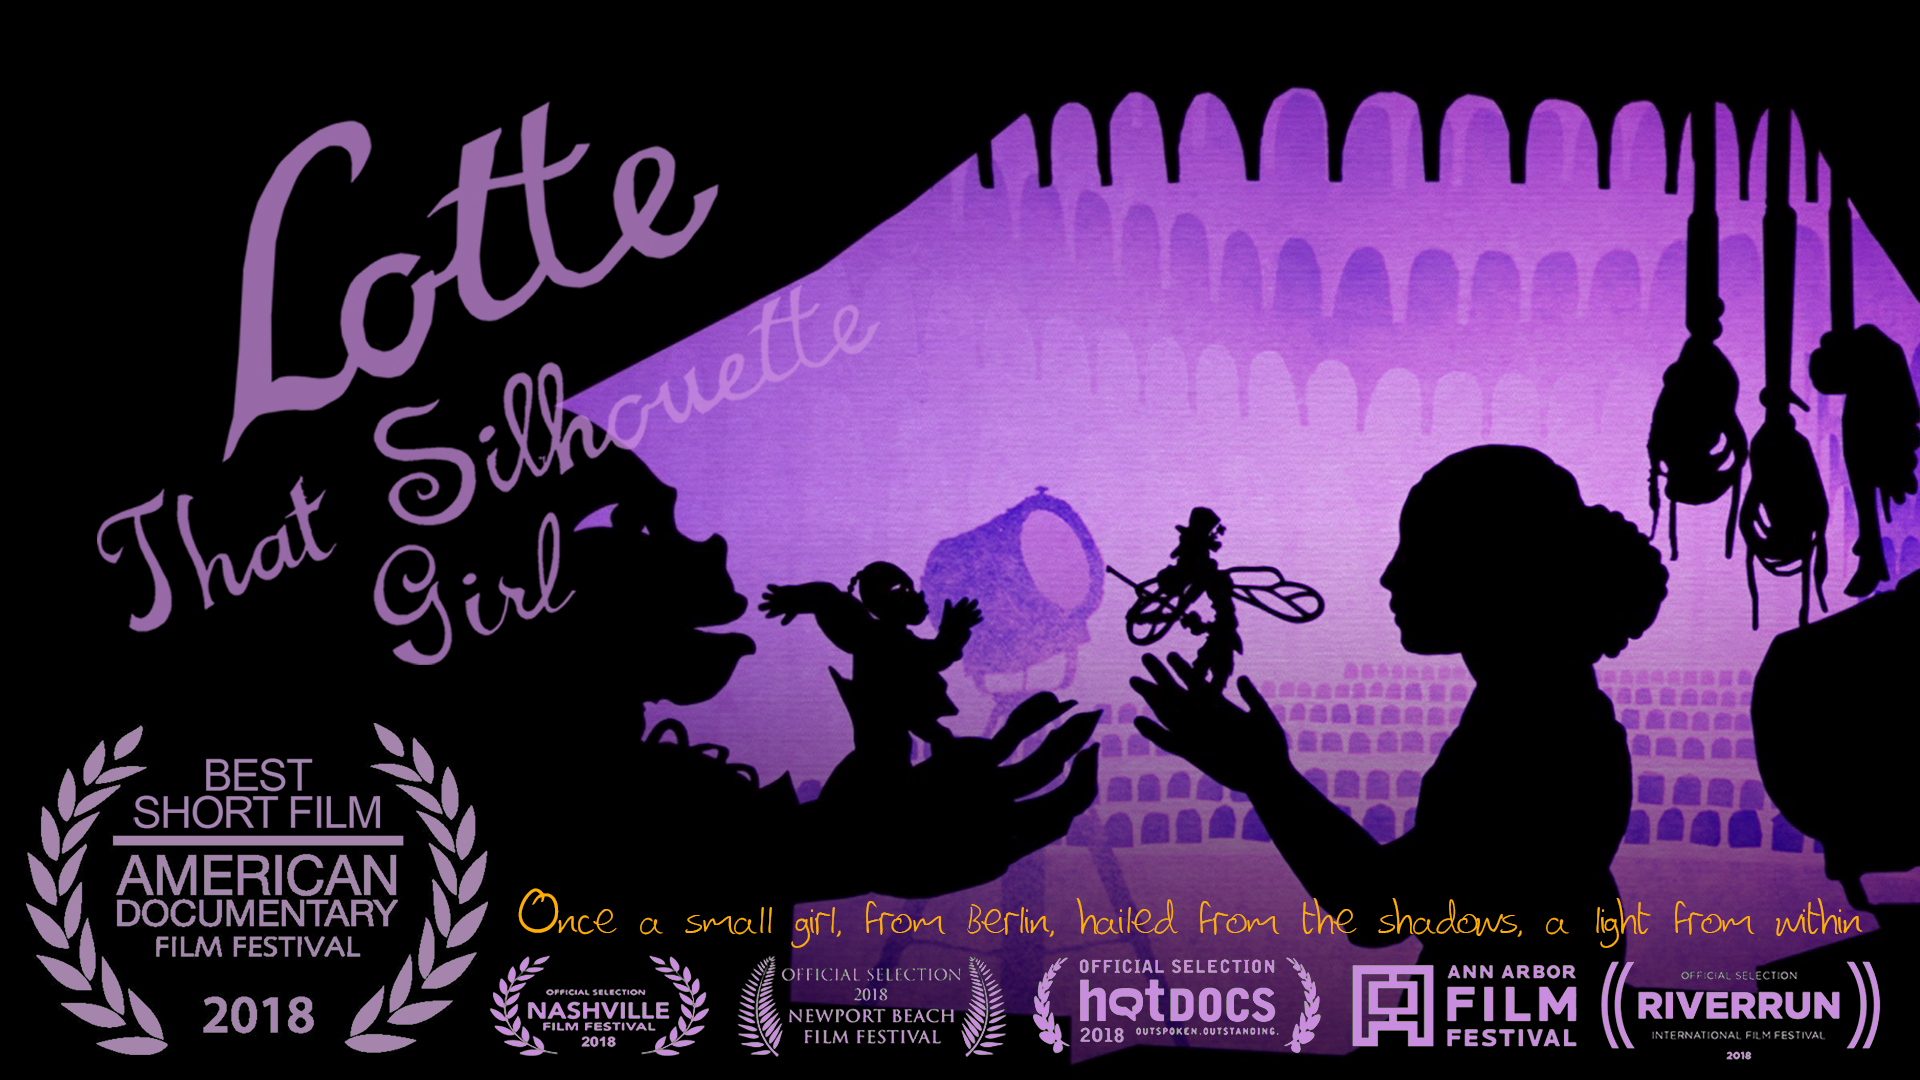 BEST SHORT FILM AT AMDOCS! - 04.25.18LOTTE THAT SILHOUETTE GIRL won Best U.S. Short at the AmDocs. MORE